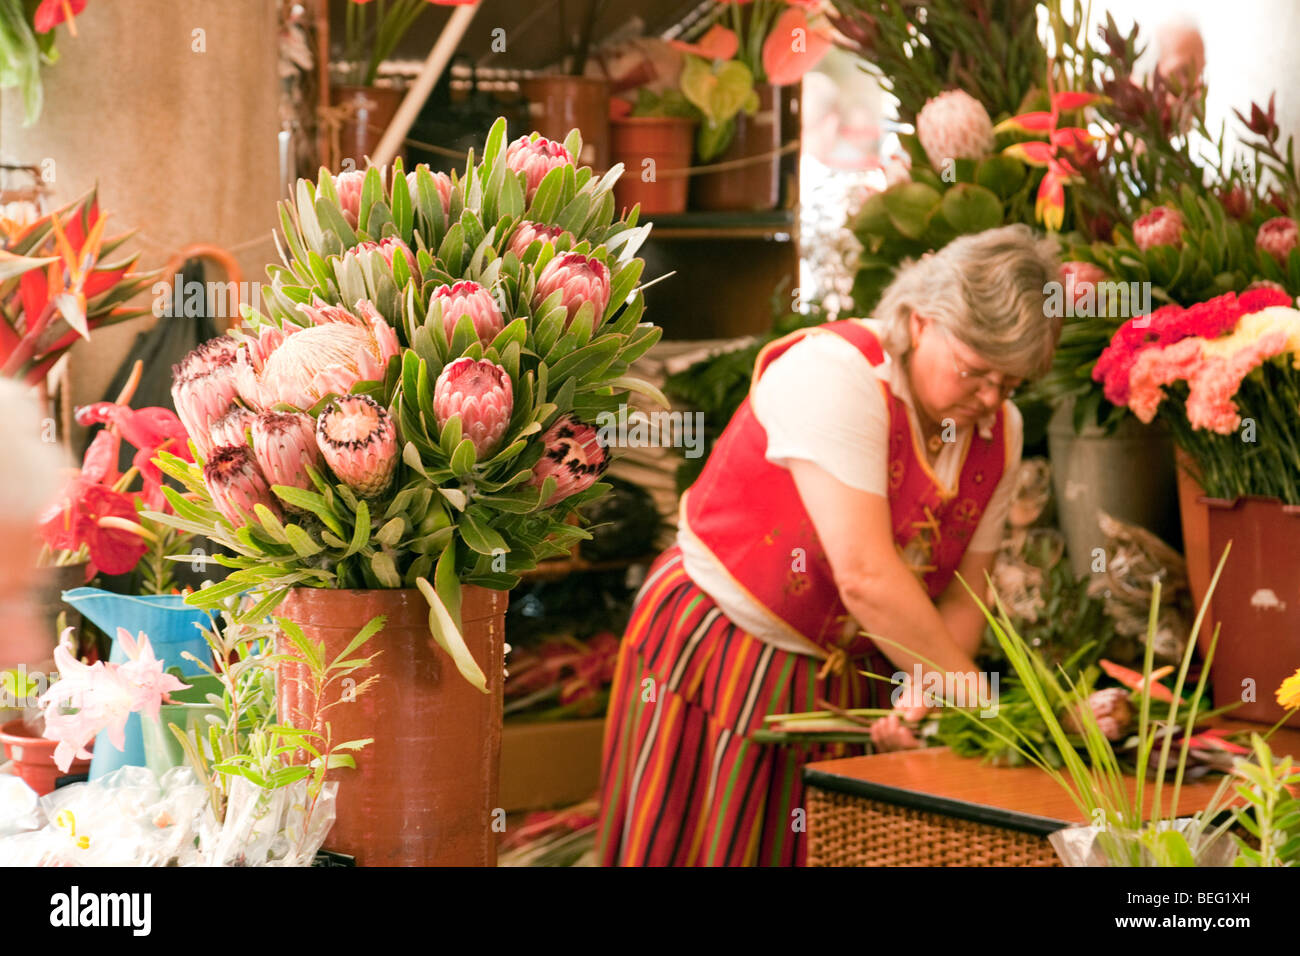 Selling flowers at the flower market, Funchal., Madeira - Stock Image